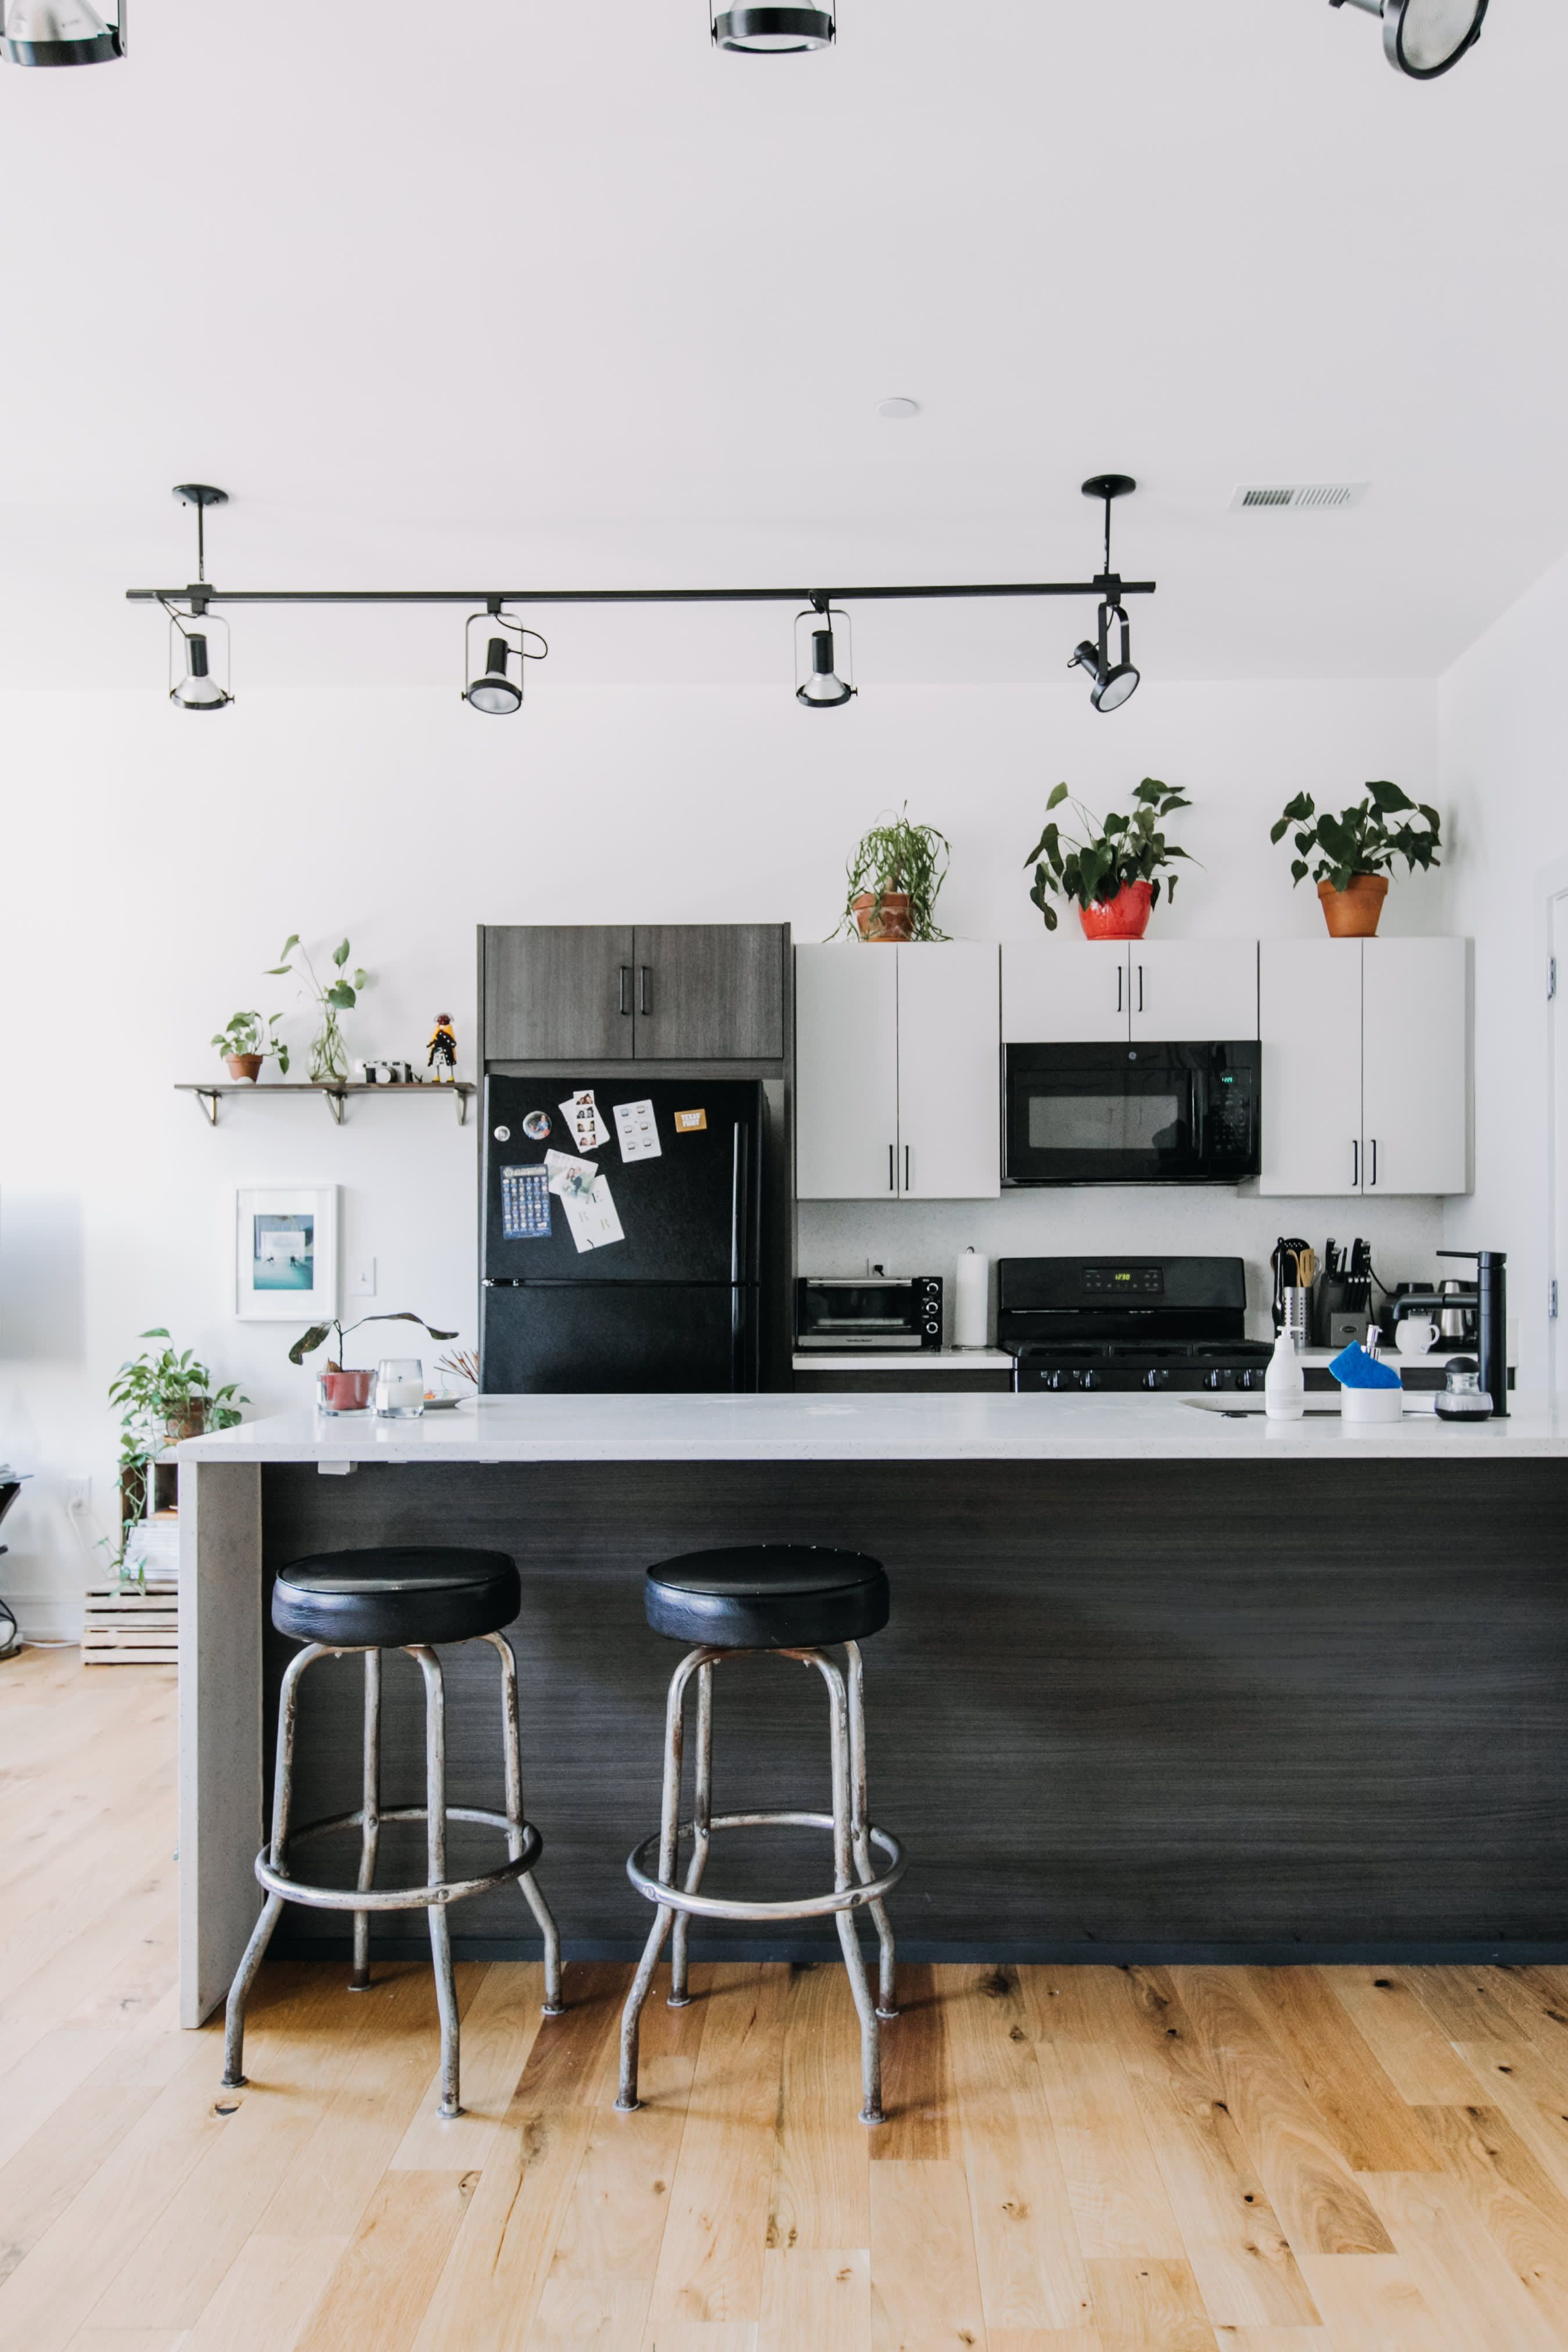 Plants and DIY Projects Make This Philly Rental Apartment